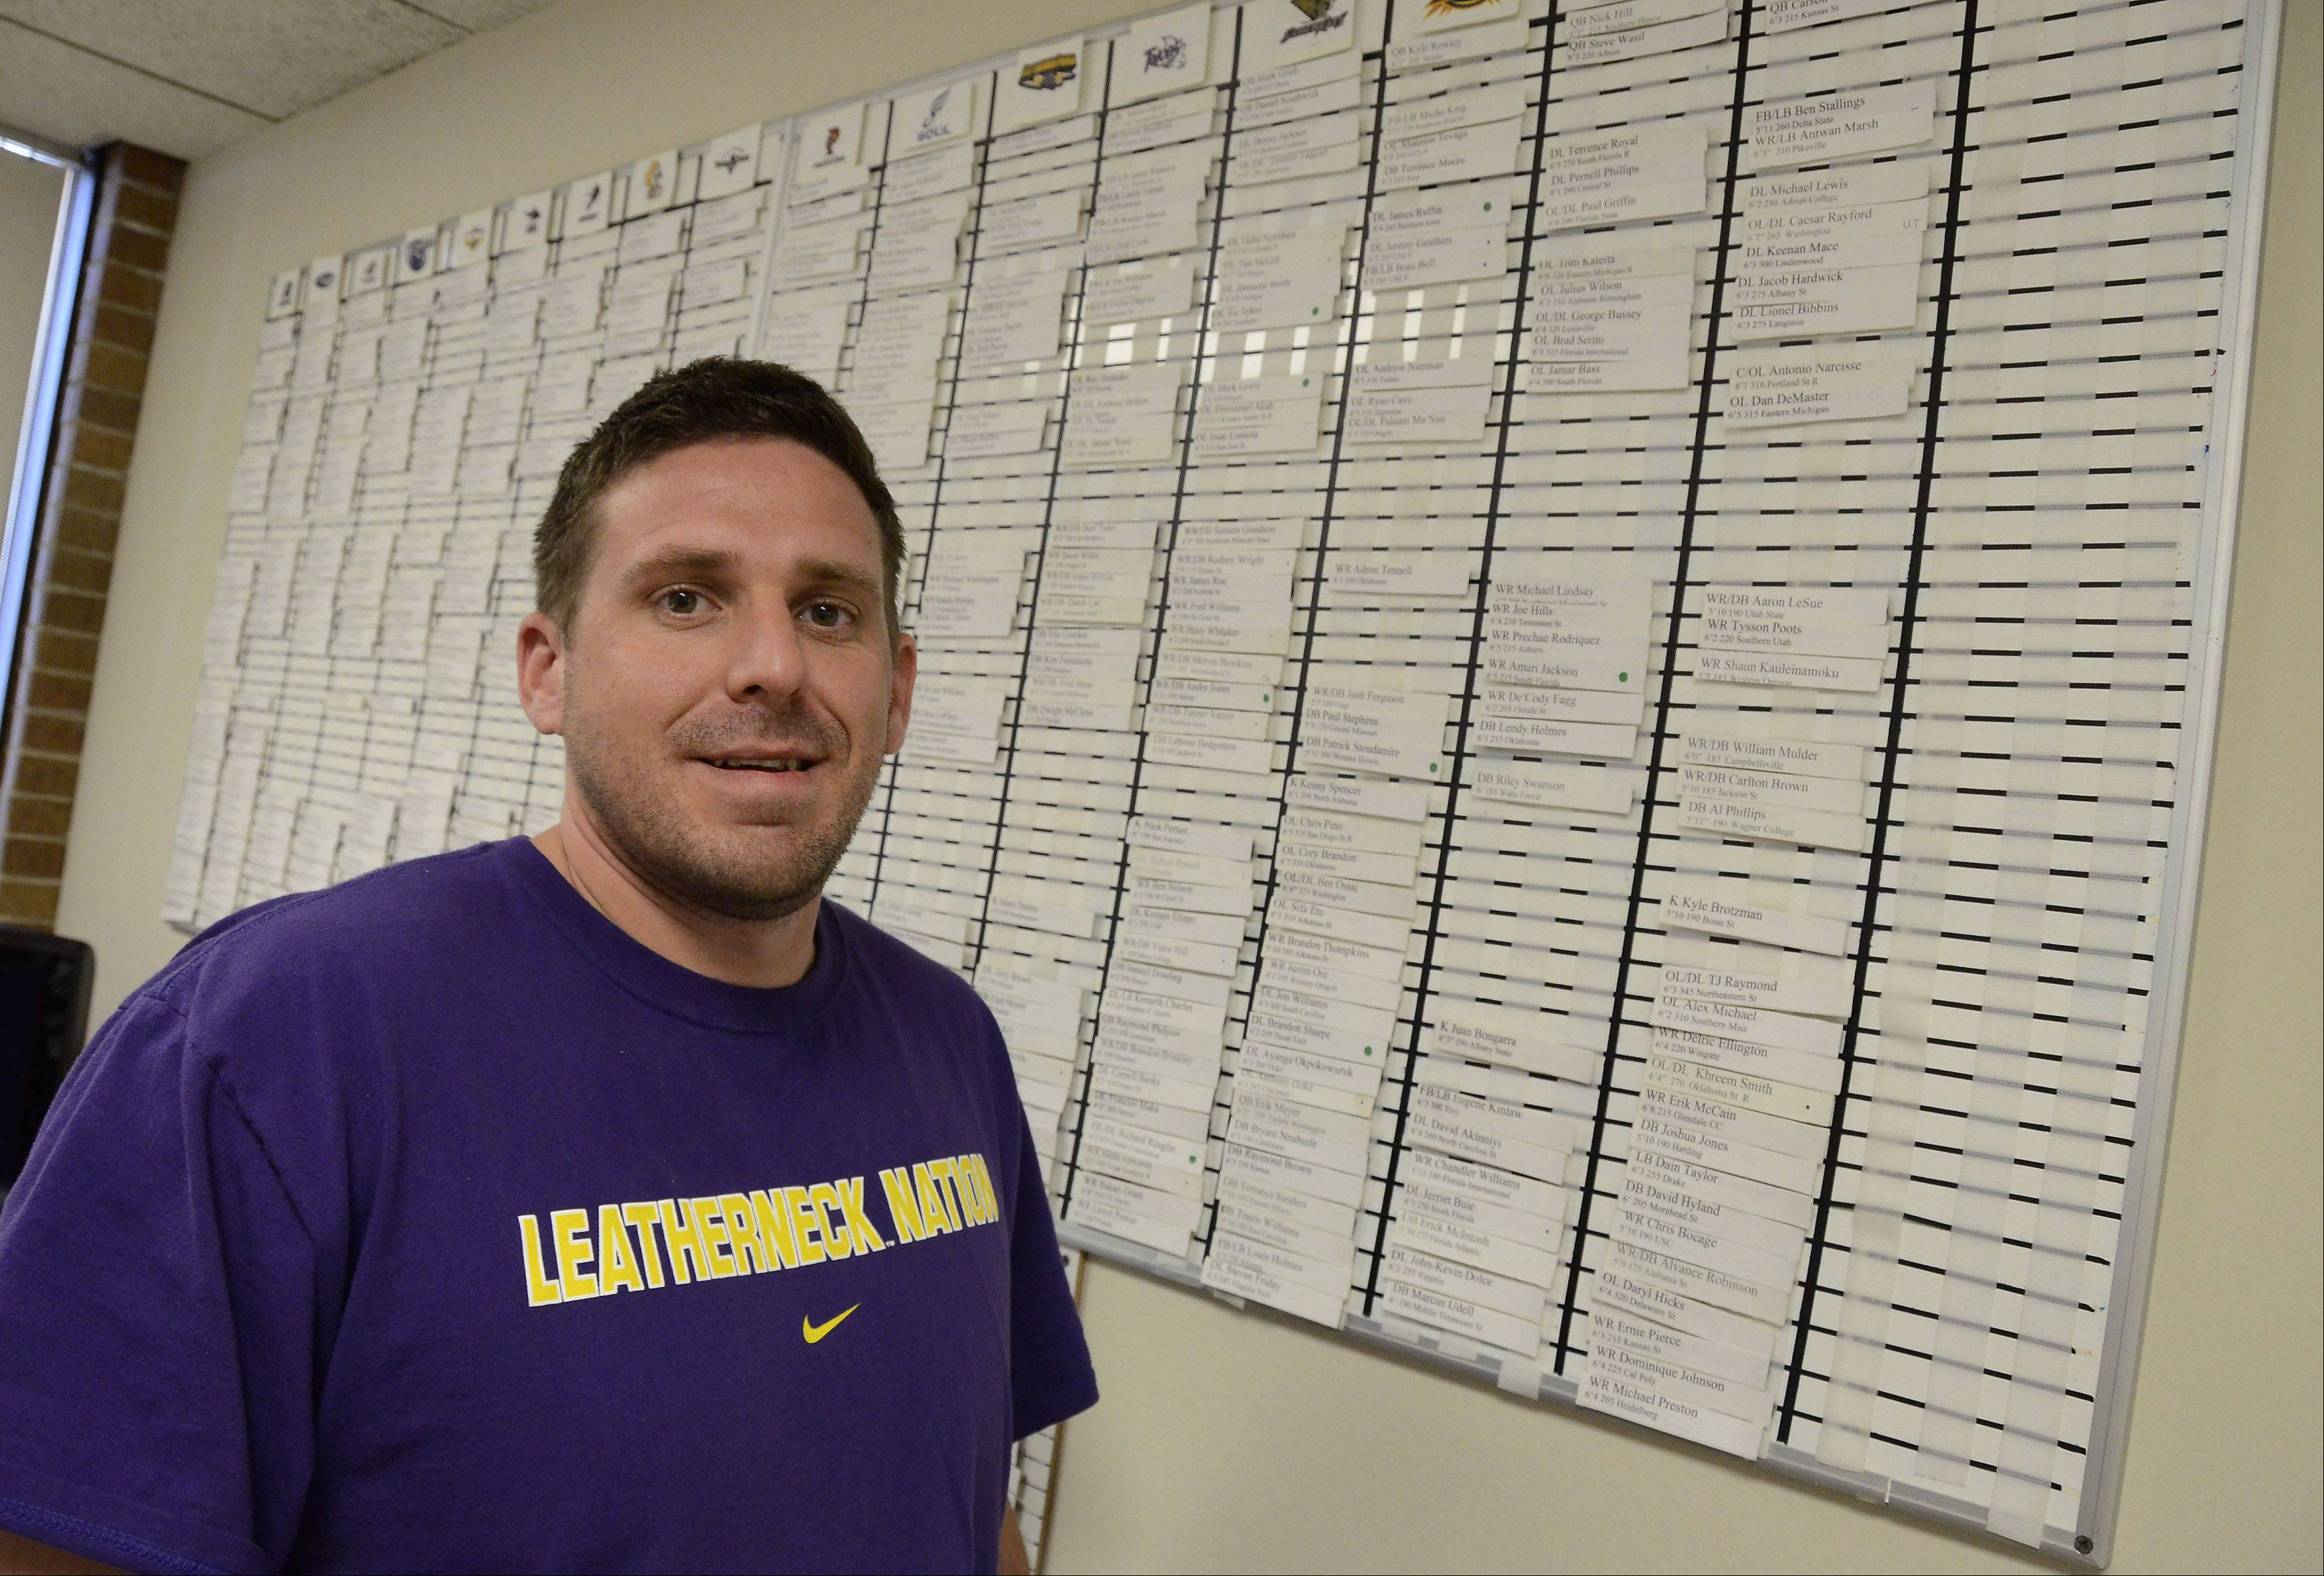 Scott Bailey, Chicago Rush director of Player Personnel / Special Teams coach & coordinator, keeps boards in his office with names of potential football players. He has to find several each week to fill out the team's roster.